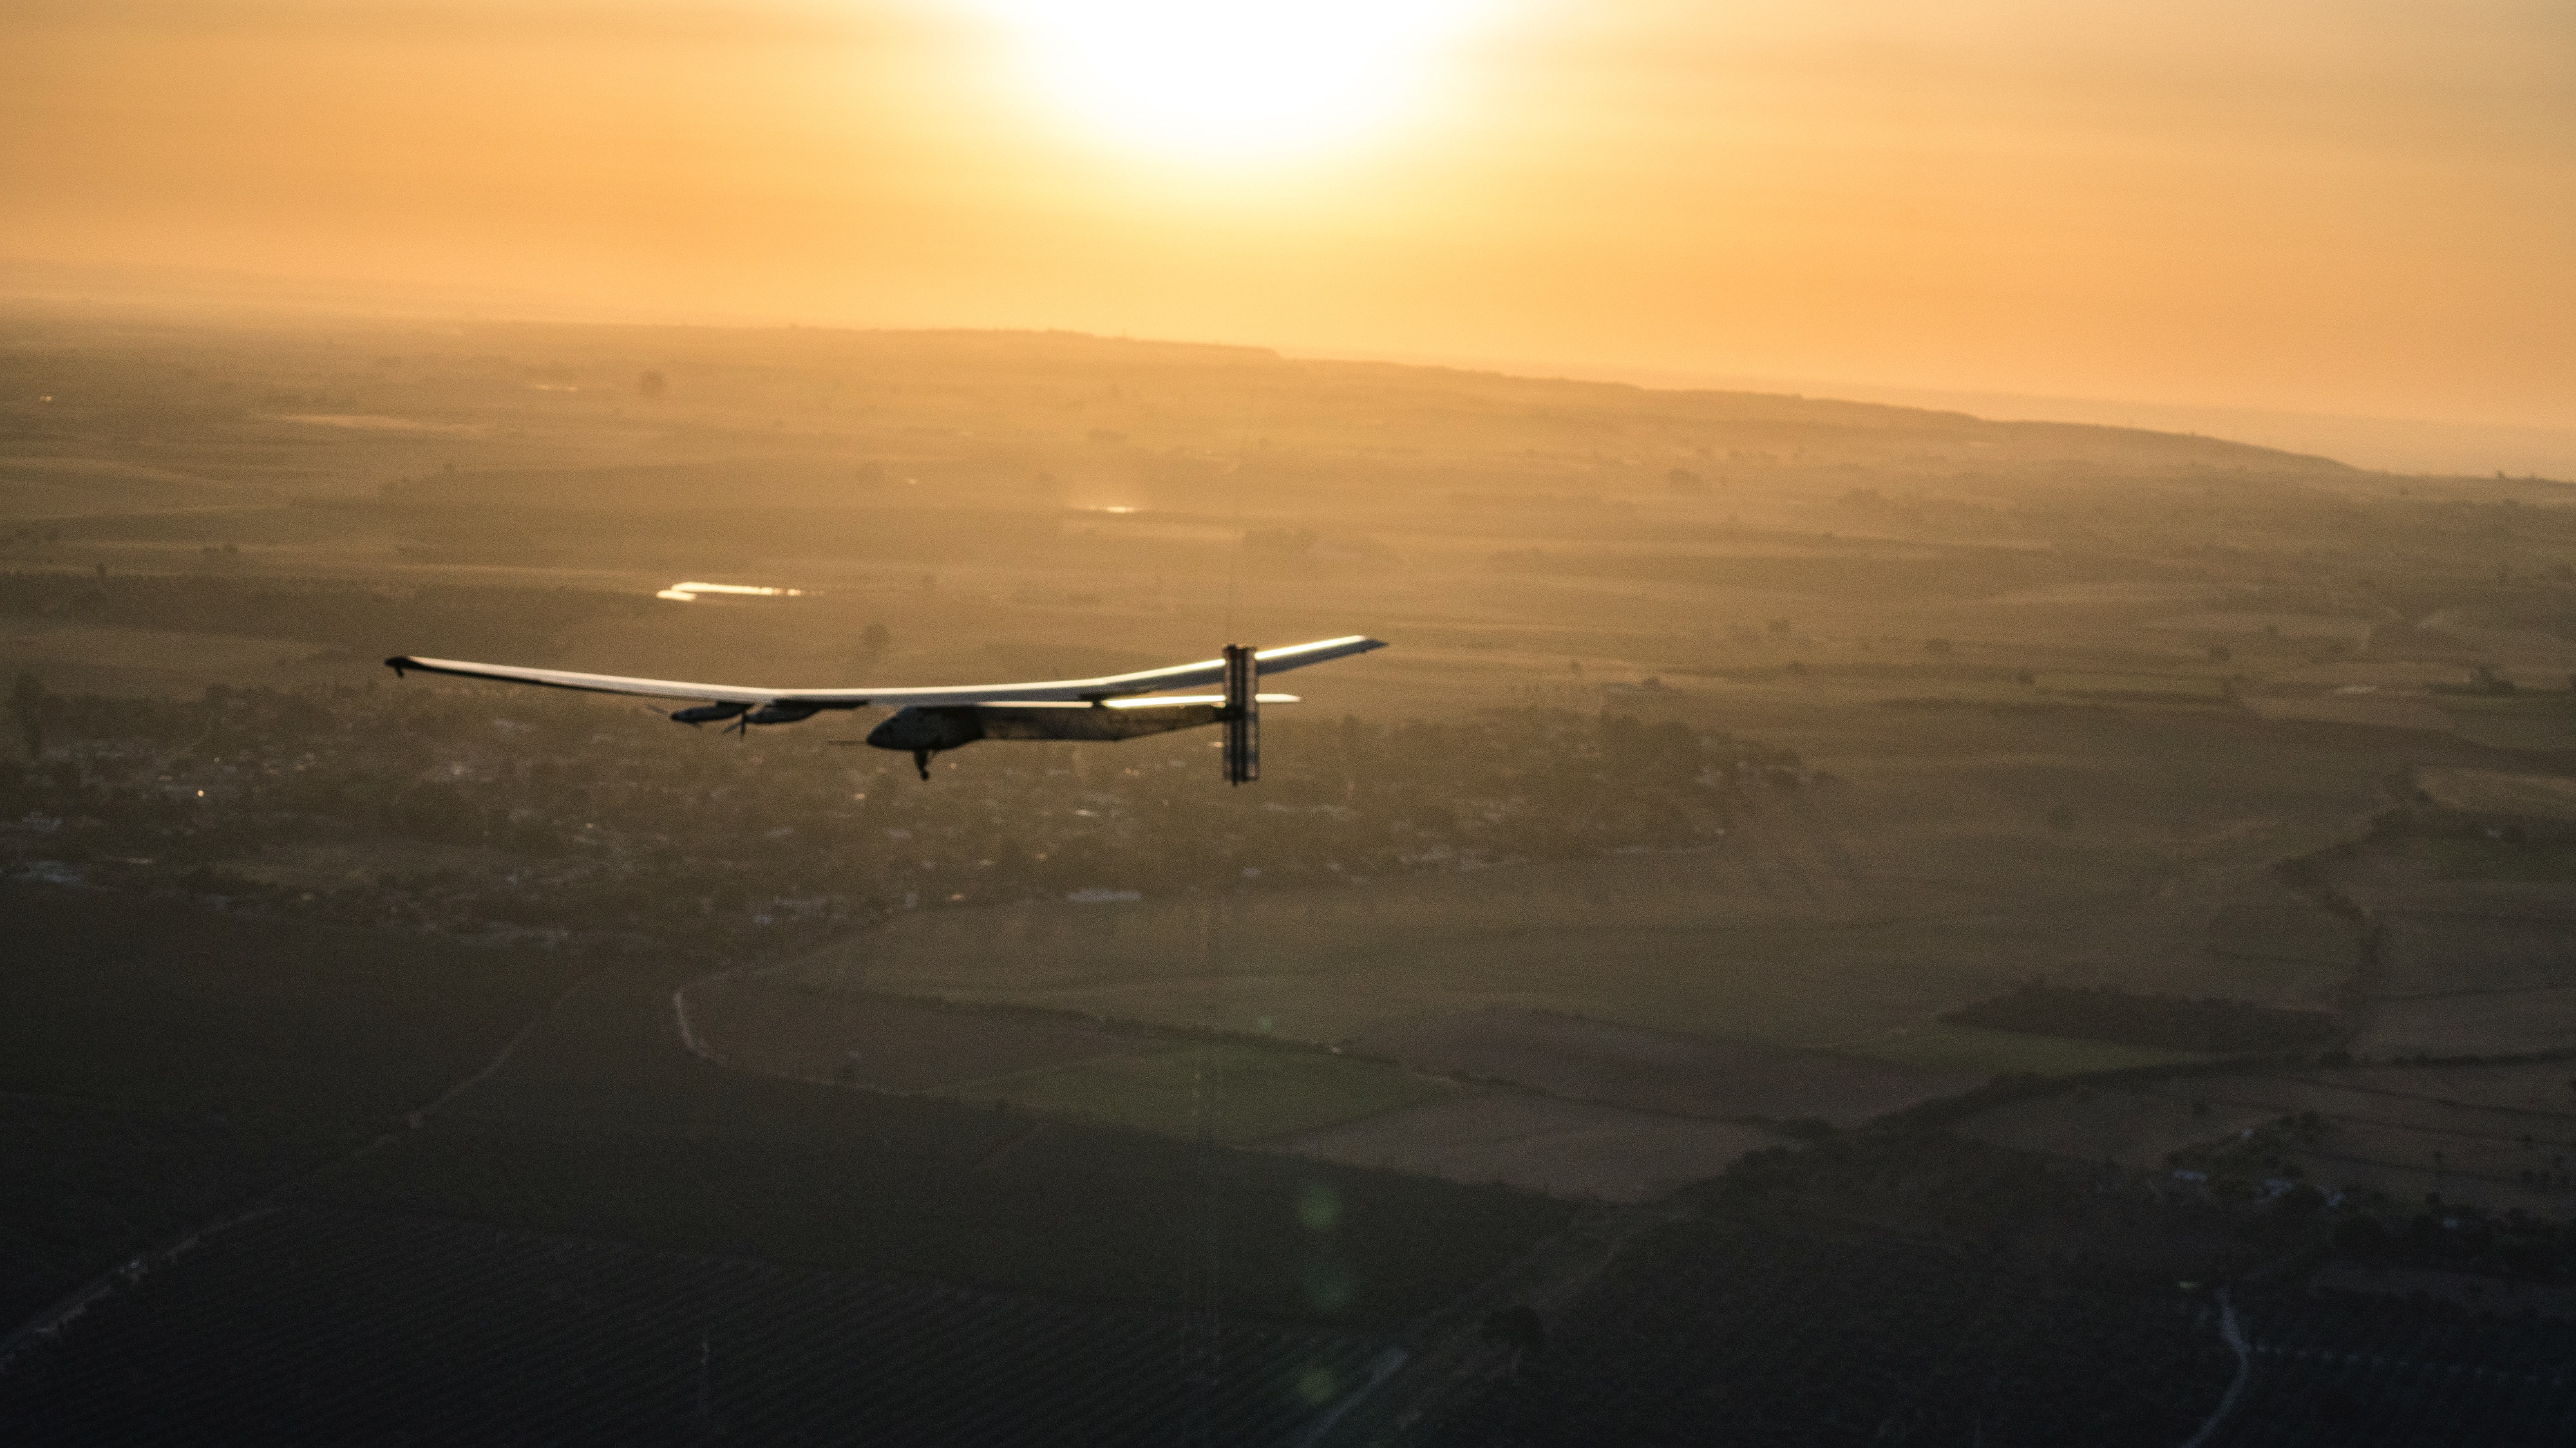 Seville, Spain, June 23th 2016: Solar Impulse successfully landed in Seville after 3 days over the Atlantic with Bertrand Piccard at the controls. Departed from Abu Dhabi on march 9th 2015, the Round-the-World Solar Flight will take 500 flight hours and cover 35í000 km. Swiss founders and pilots, Bertrand Piccard and AndrÈ Borschberg hope to demonstrate how pioneering spirit, innovation and clean technologies can change the world. The duo will take turns flying Solar Impulse 2, changing at each stop and will fly over the Arabian Sea, to India, to Myanmar, to China, across the Pacific Ocean, to the United States, over the Atlantic Ocean to Southern Europe or Northern Africa before finishing the journey by returning to the initial departure point. Landings will be made every few days to switch pilots and organize public events for governments, schools and universities.